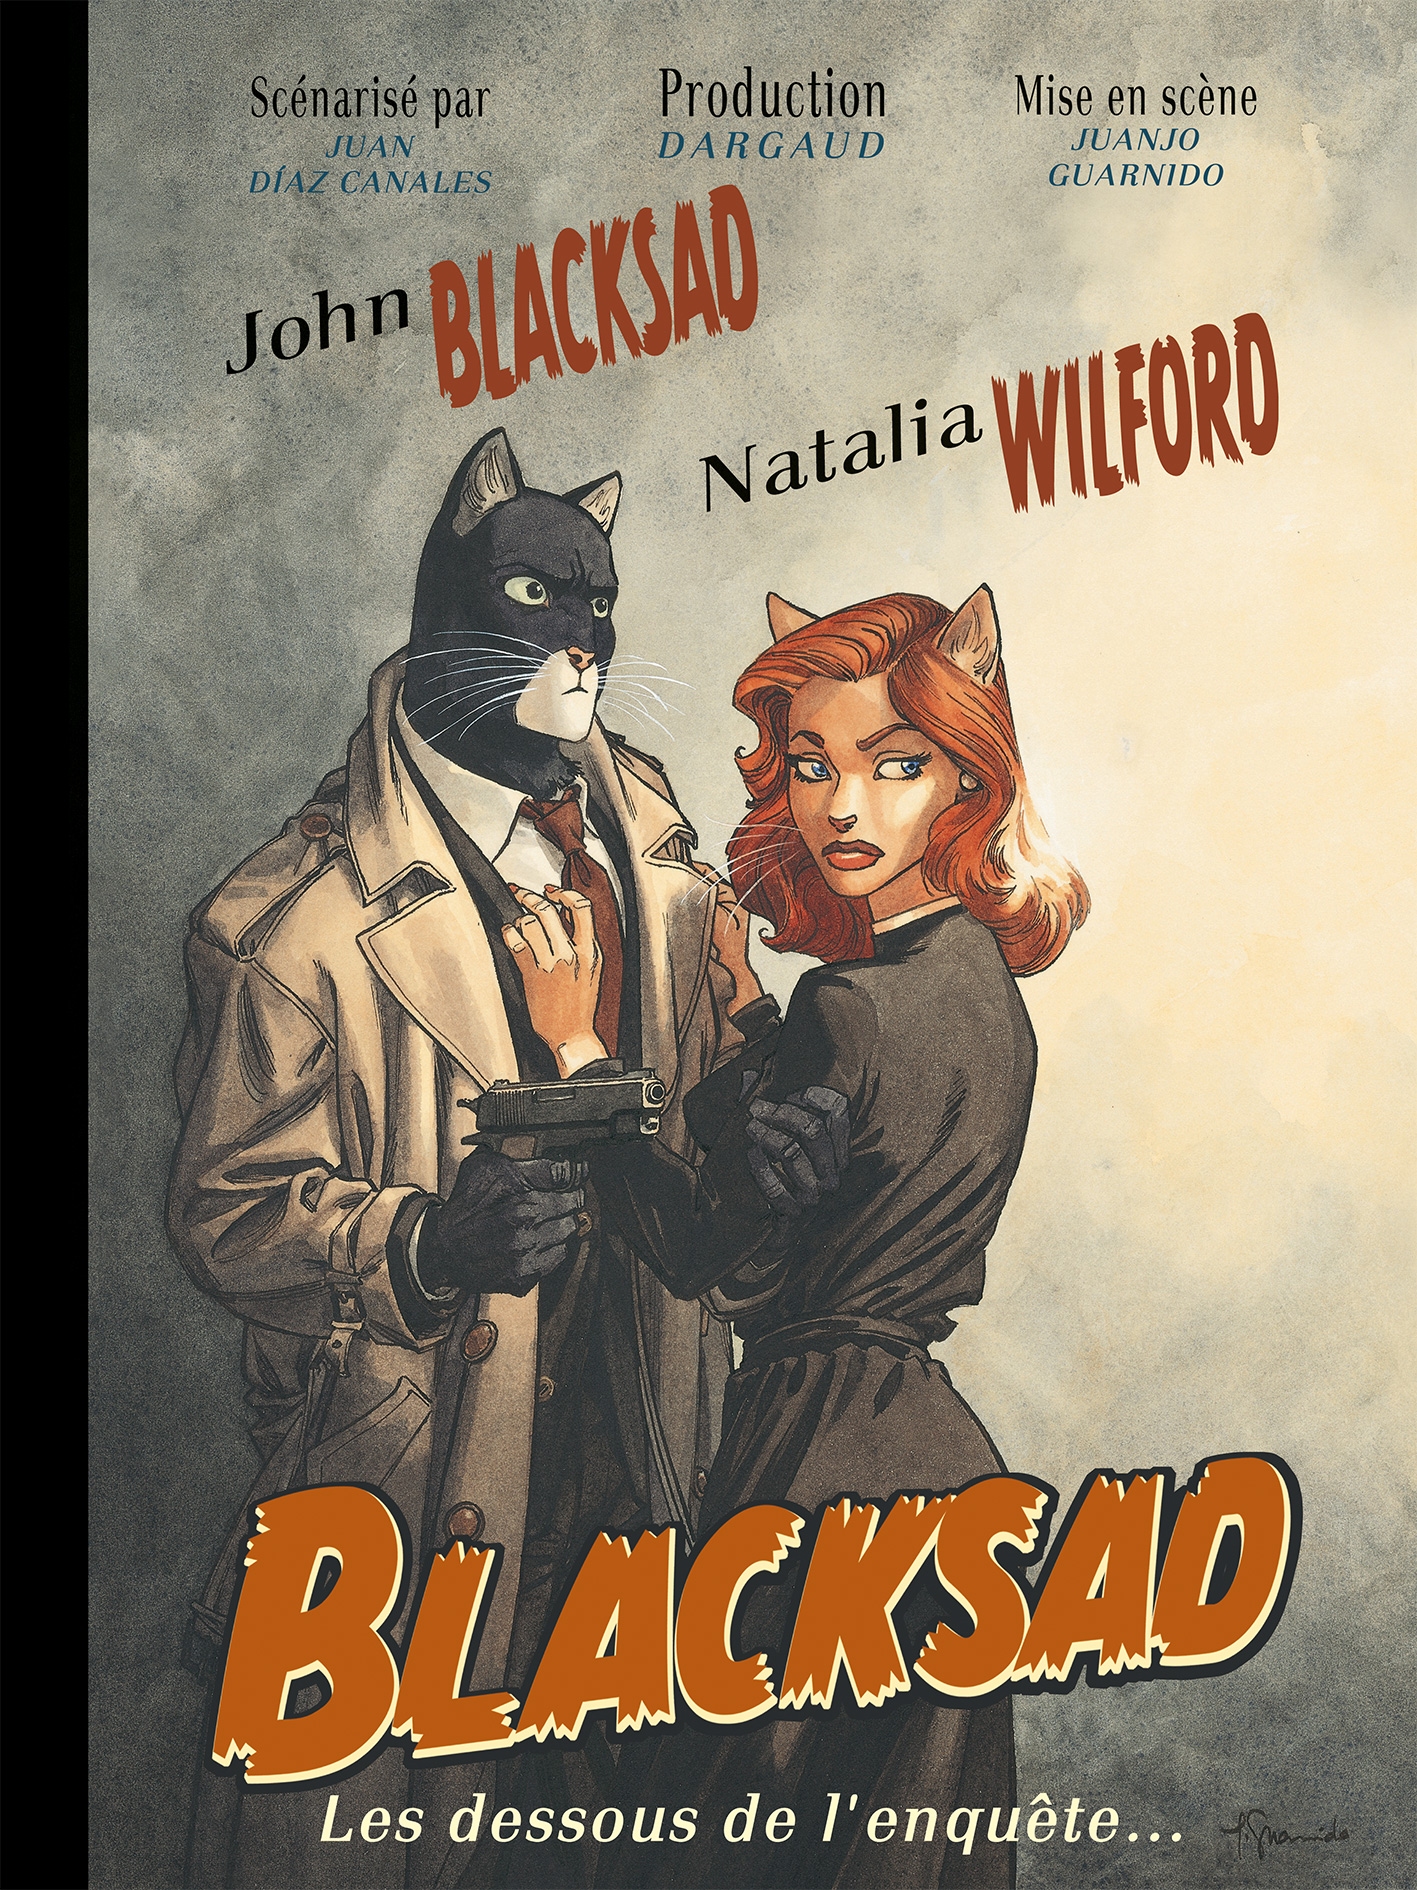 blacksad hors s rie tome 0 dessous de l 39 enqu te les bd ditions dargaud. Black Bedroom Furniture Sets. Home Design Ideas